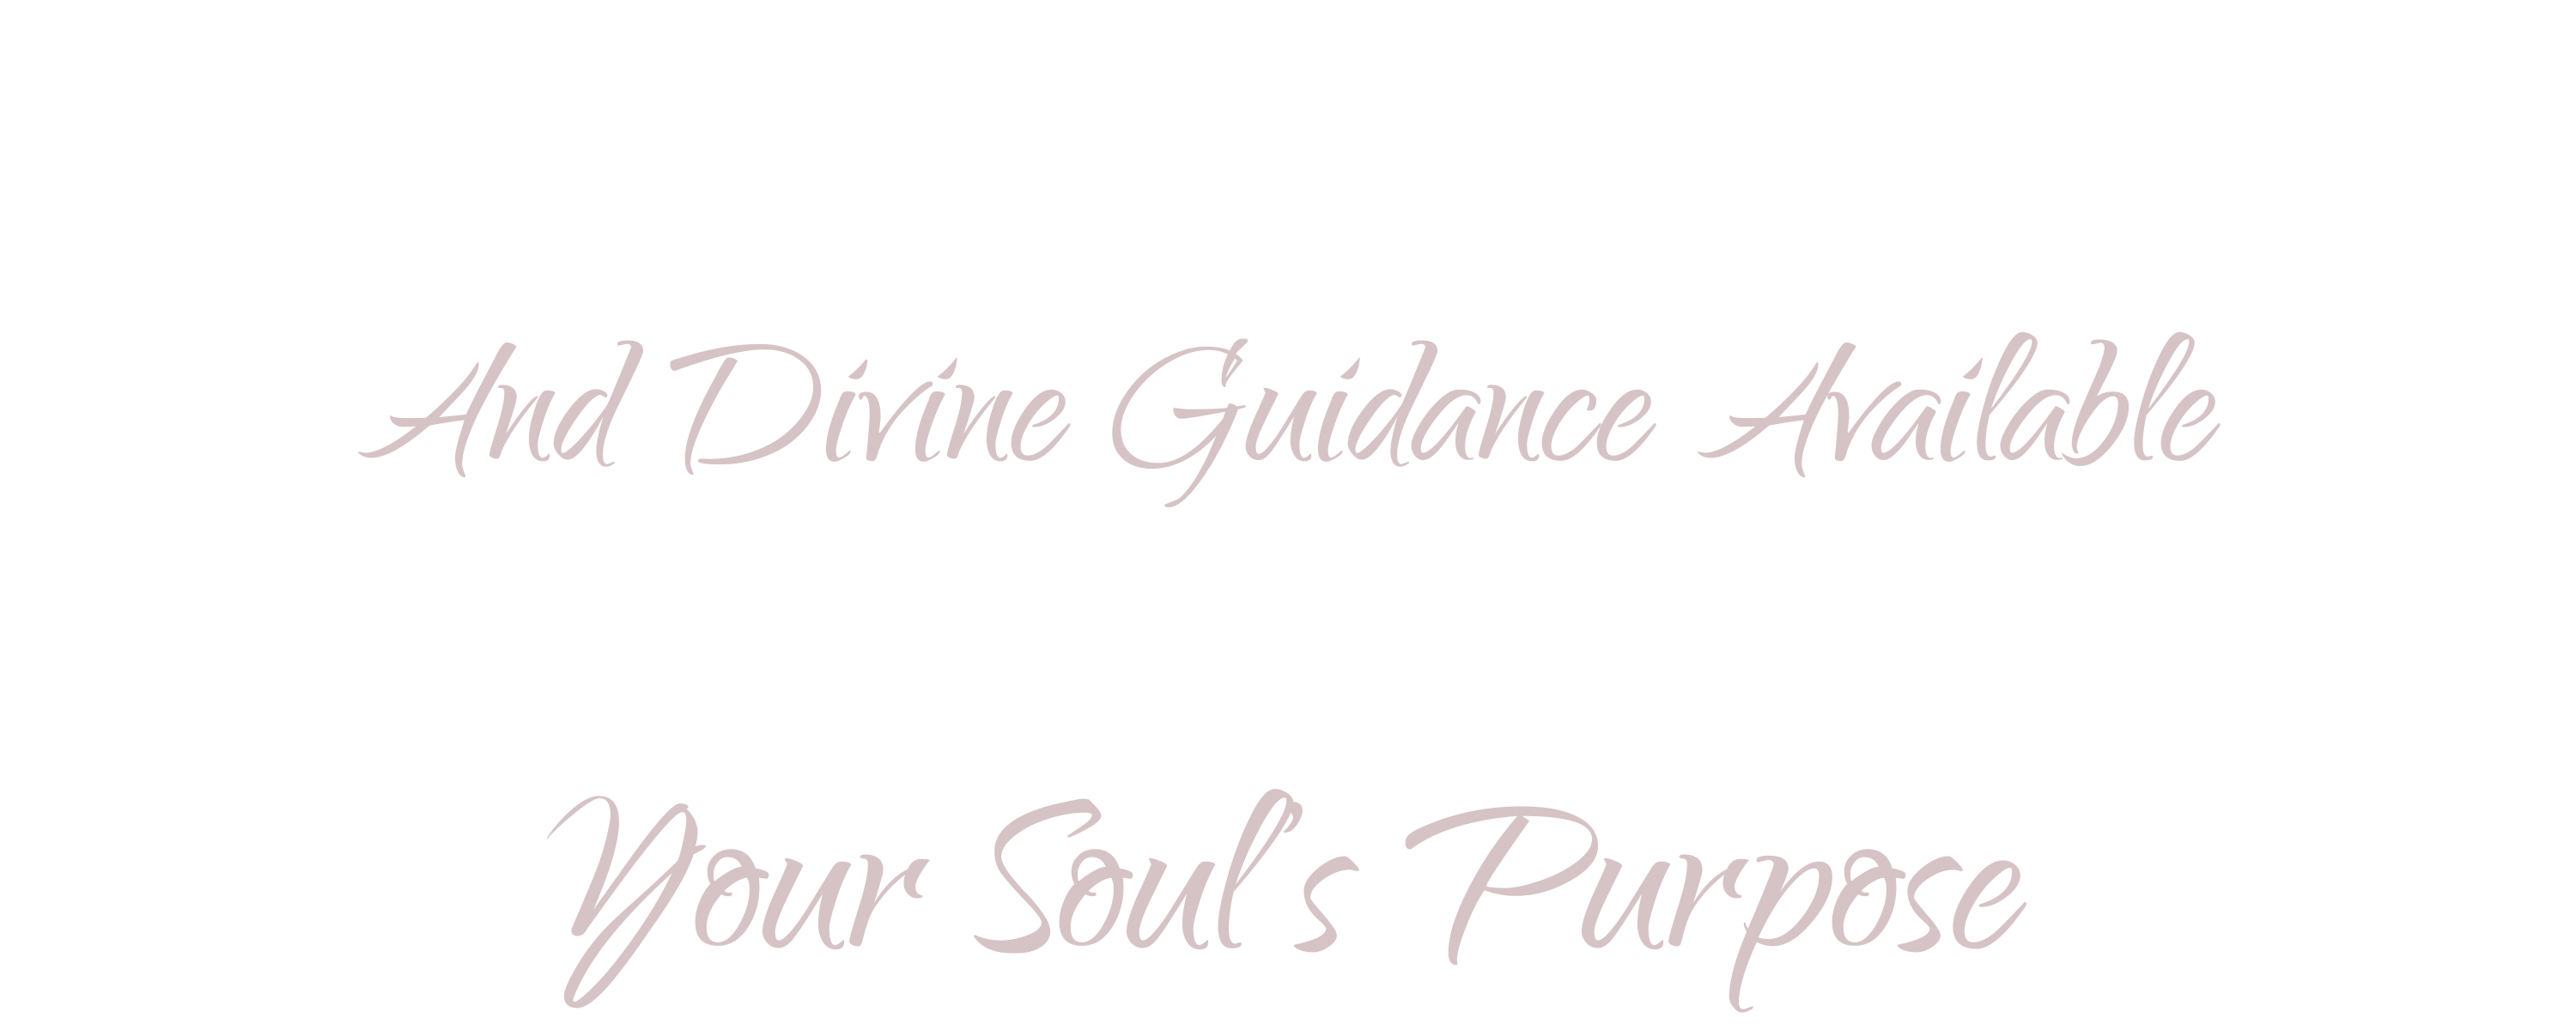 Empower Yourself With The Deepest Level of Healing And Divine Guidance Available And Manifest More Easily, In Full Alignment With Your Soul's Purpose